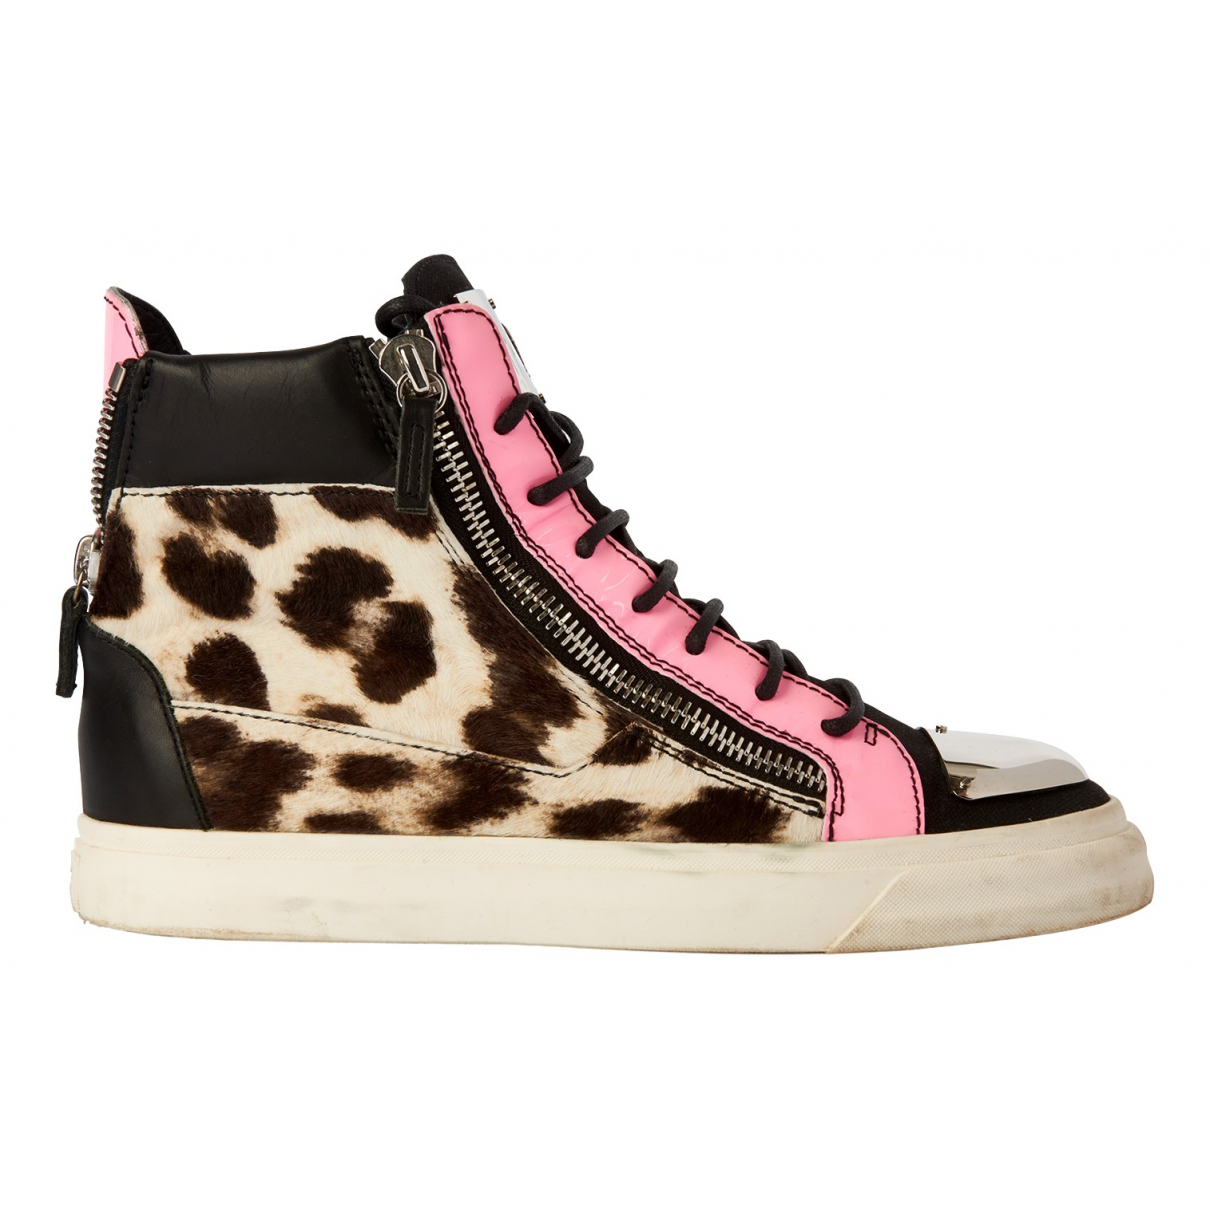 Giuseppe Zanotti Donna Multicolour Leather Trainers for Women 7 UK